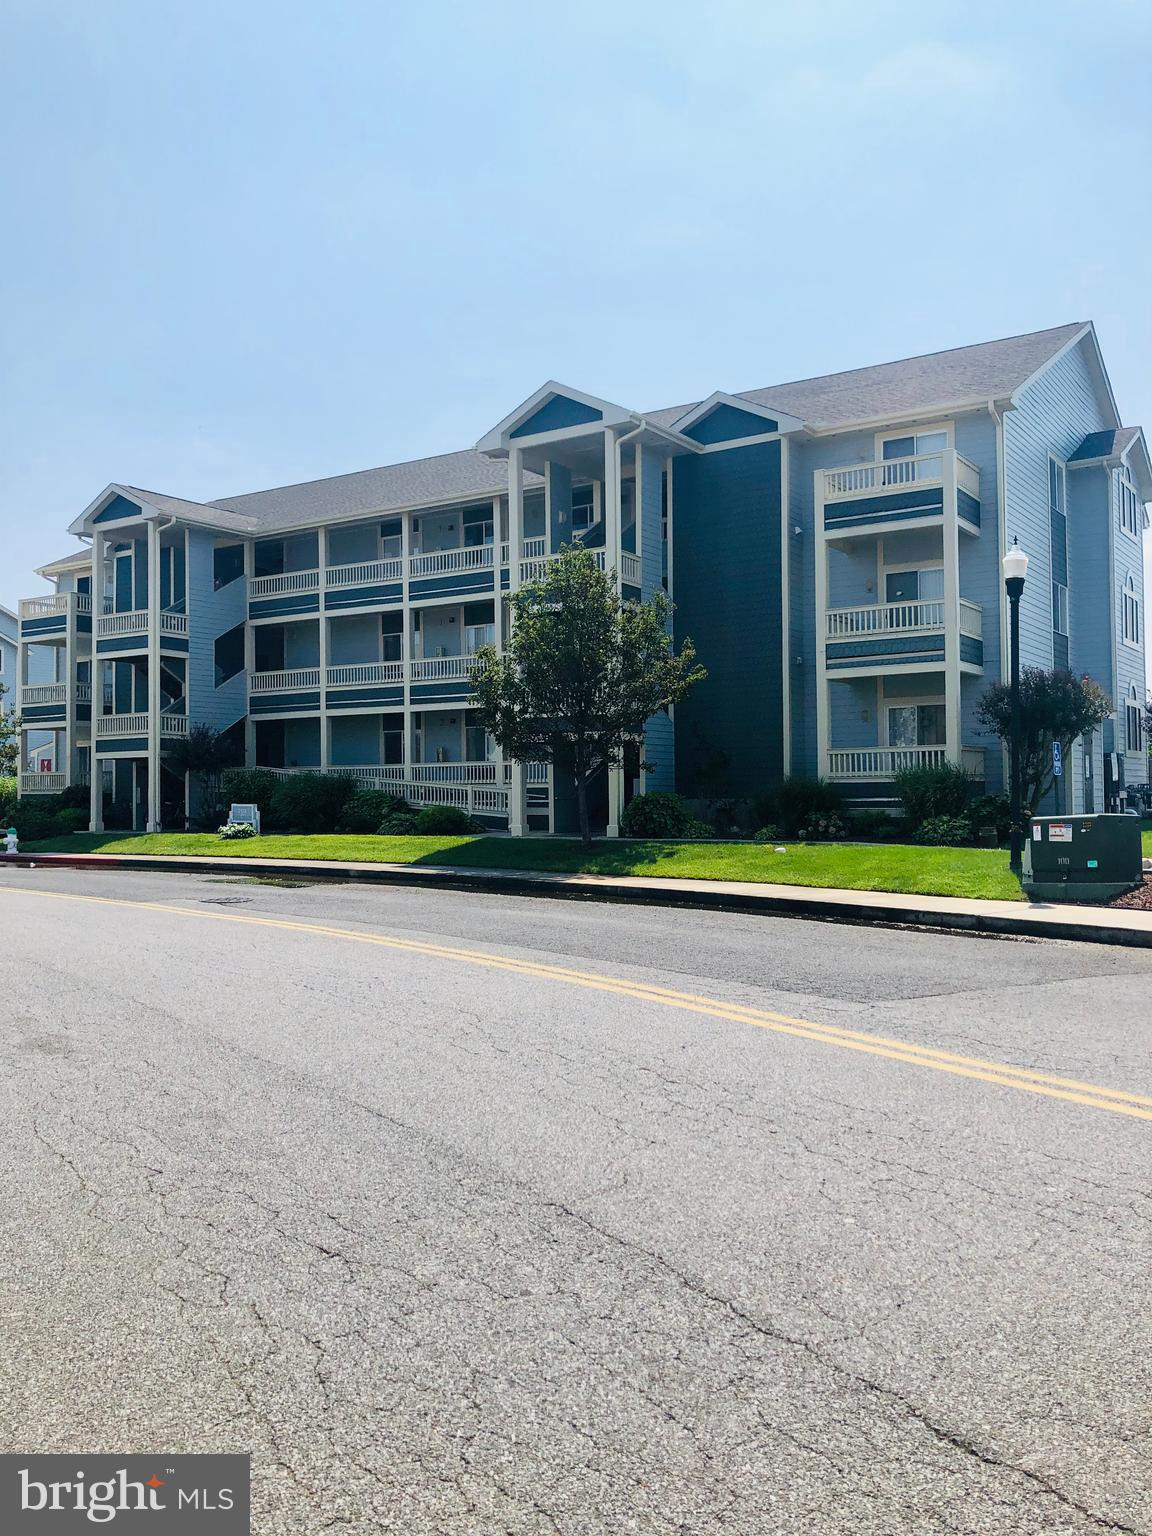 "Come take peek at this lovely 2 BR/2 BA condo located on the second floor of the ""C"" building in Bay Watch III! This unit is located in the beautiful neighbourhood of Heron Harbor Isle in North Ocean City. You will love this family oriented, coastal location, which is near many wonderful restaurants, grocery stores, shopping, and of course, the beach!  With the southern exposure from the back deck, this condo is very bright and cheerful.  Sit on the deck and enjoy watching the boats go by.  Slip #67 is included with this property, and offers electric pedestals and hose bibs for your convenience, and a lovely boardwalk for daily strolls.  The Kitchen is laid out for ease of cooking, with a bar area for extra seating.  Beautiful stone backsplashes have been added.  A full membership to the Heron Harbour Isle Recreation Association is included, where you will enjoy indoor and outdoor pools, Har-Tru, lighted tennis courts, workout room, sauna and Kiddie pool.  HVAC was replaced in 2018; carpeting in 2015. Although the owners are excluding all contents and furnishings, they will be replacing all the furniture with comparable items - deck furniture and Kitchen contents excluded.  Come see what Heron Harbour is all about!"